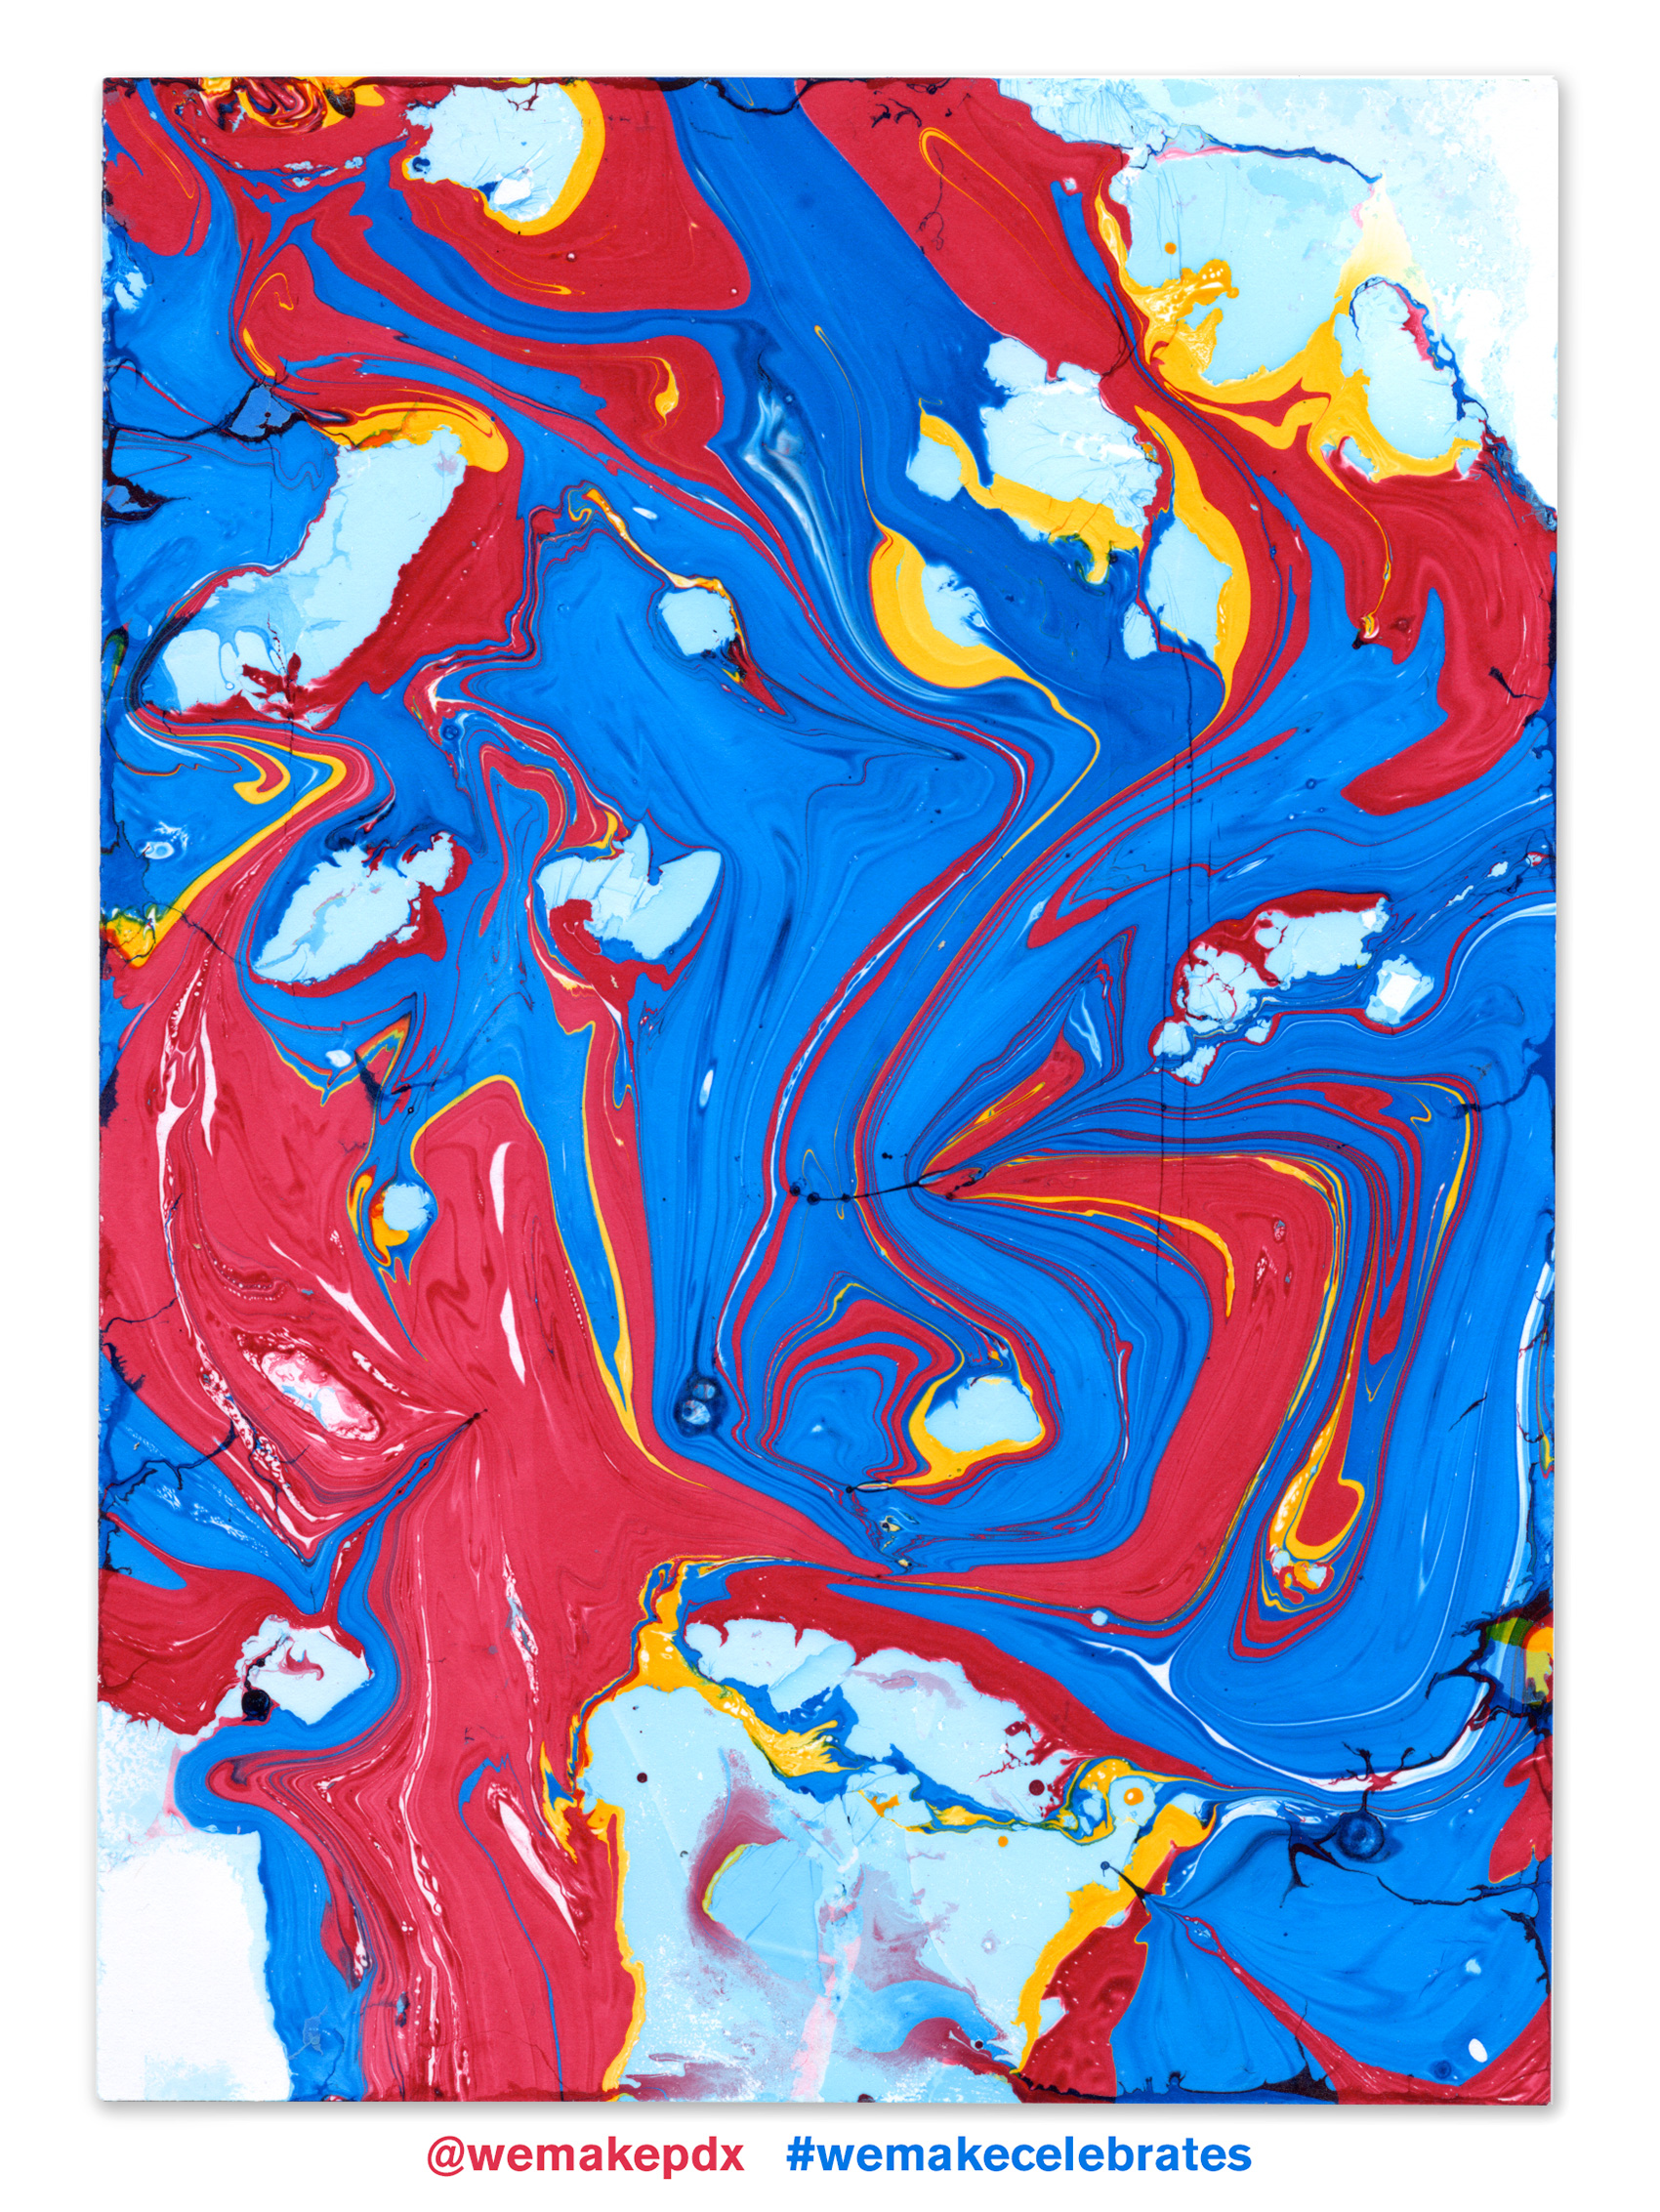 red and blue marbled paper made at the WeMake Conference